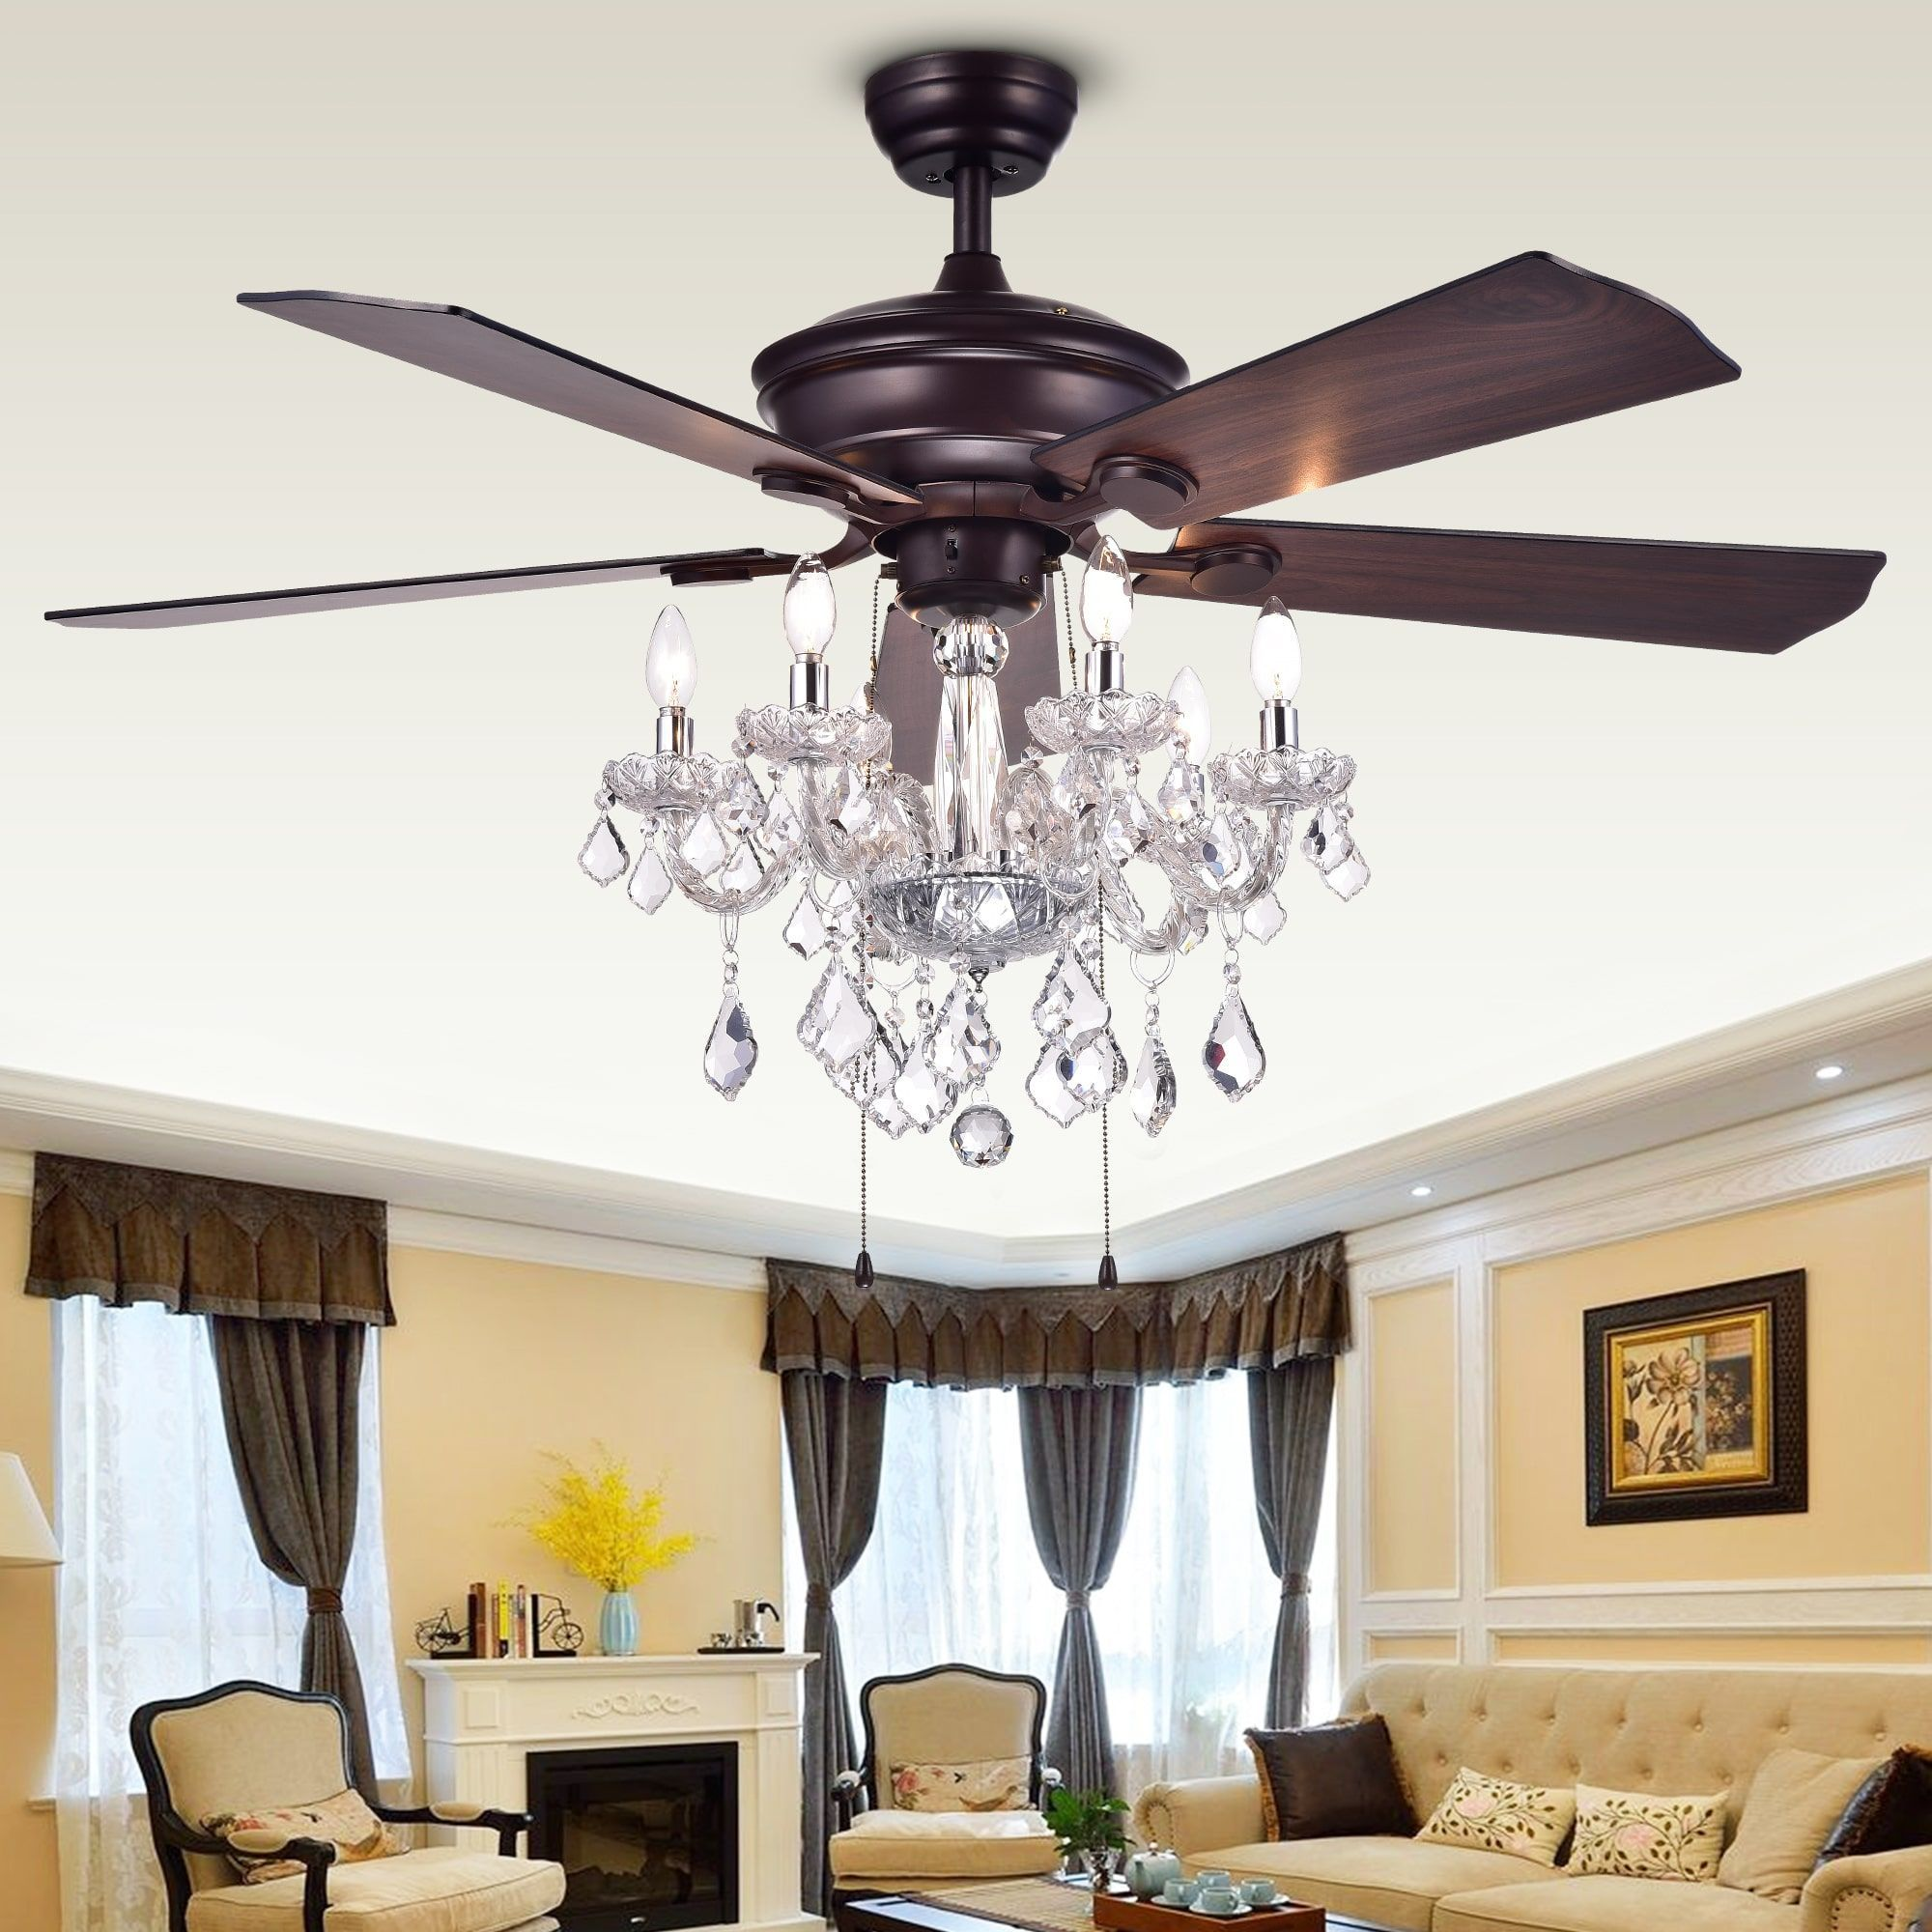 Warehouse Of Tiffany Havorand 52 Inch 5 Blade Ceiling Fan With Crystal Chandelier Brown Bronze